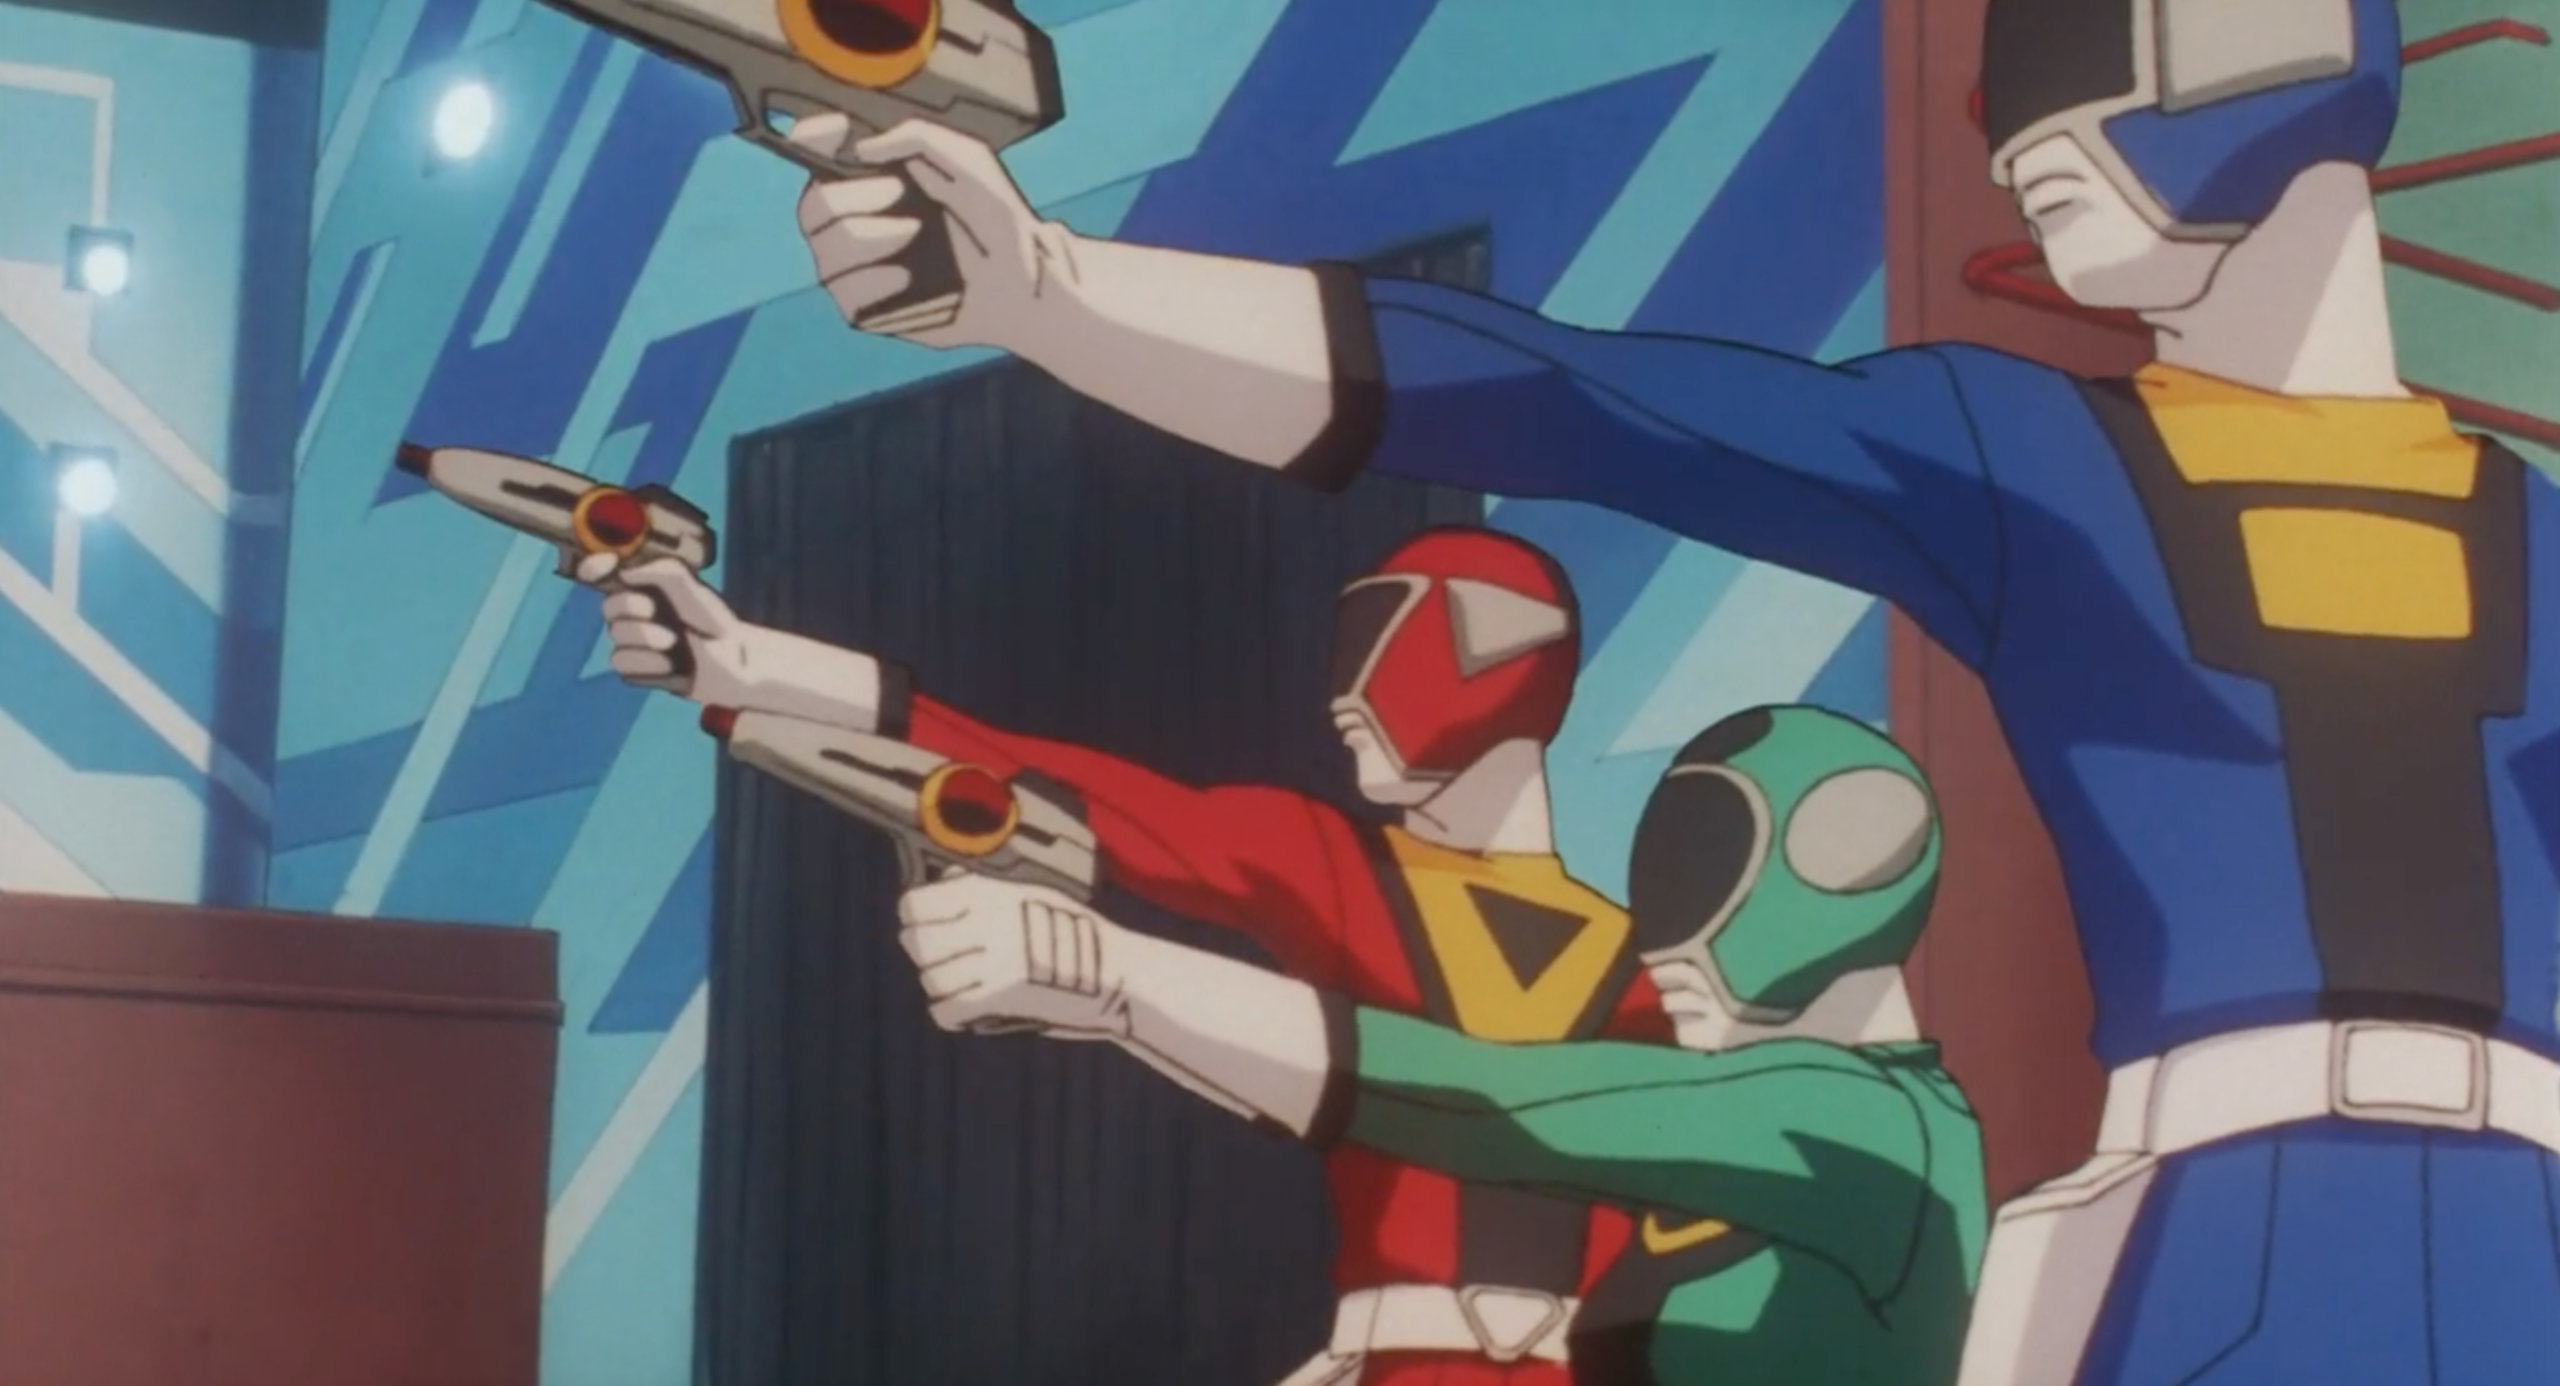 The Powertrons fire their laser guns in the opening scene of Perfect Blue